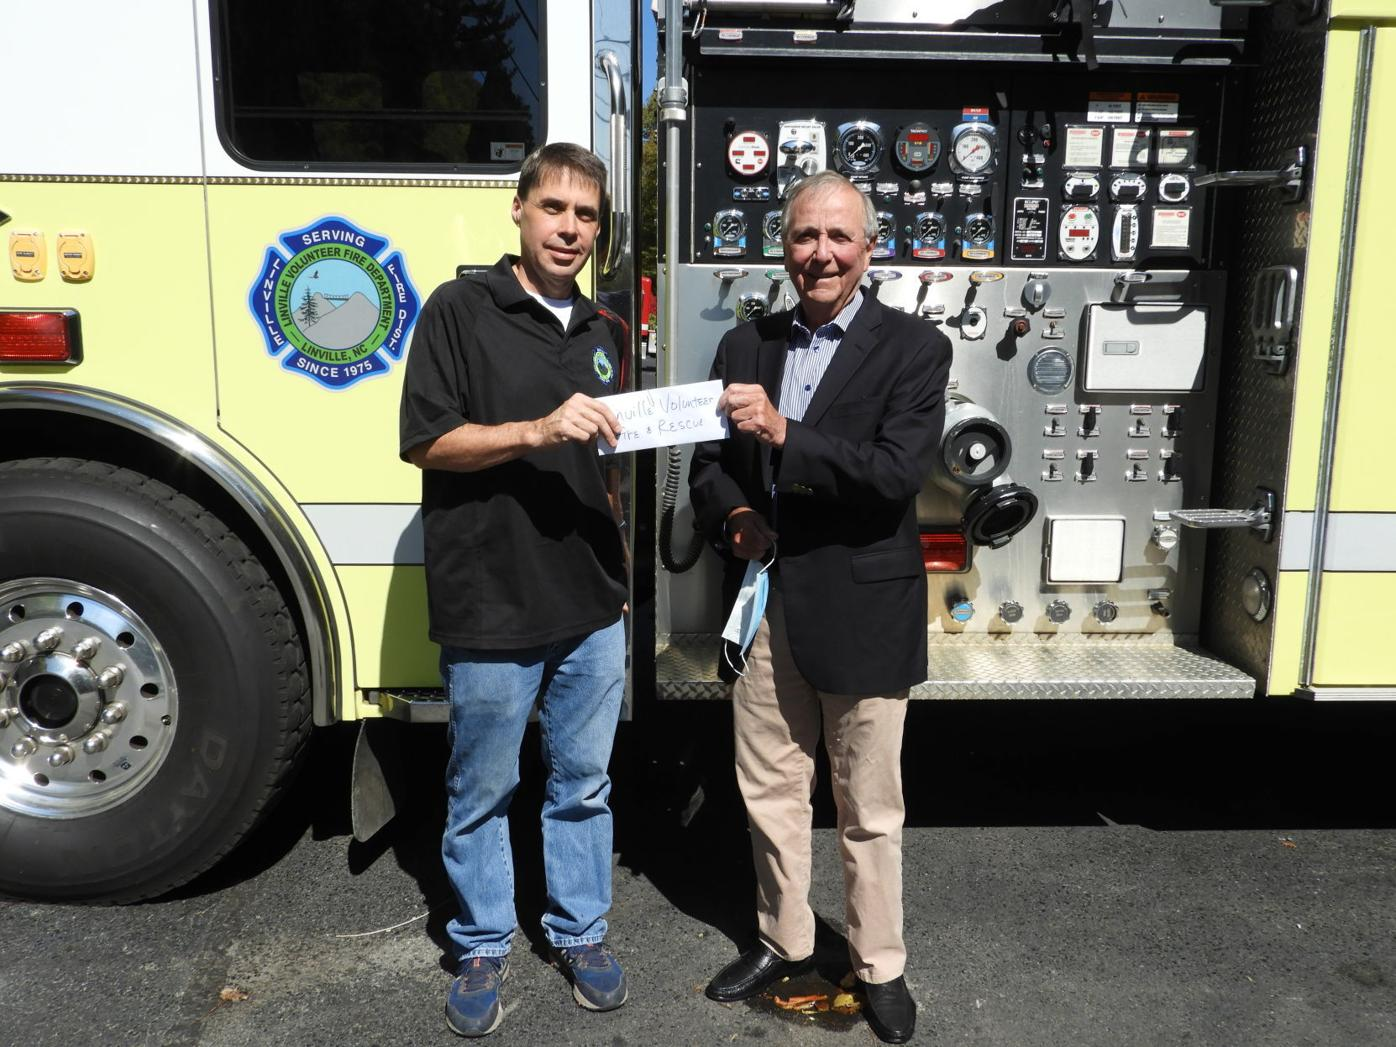 Linville Volunteer Fire Department donation